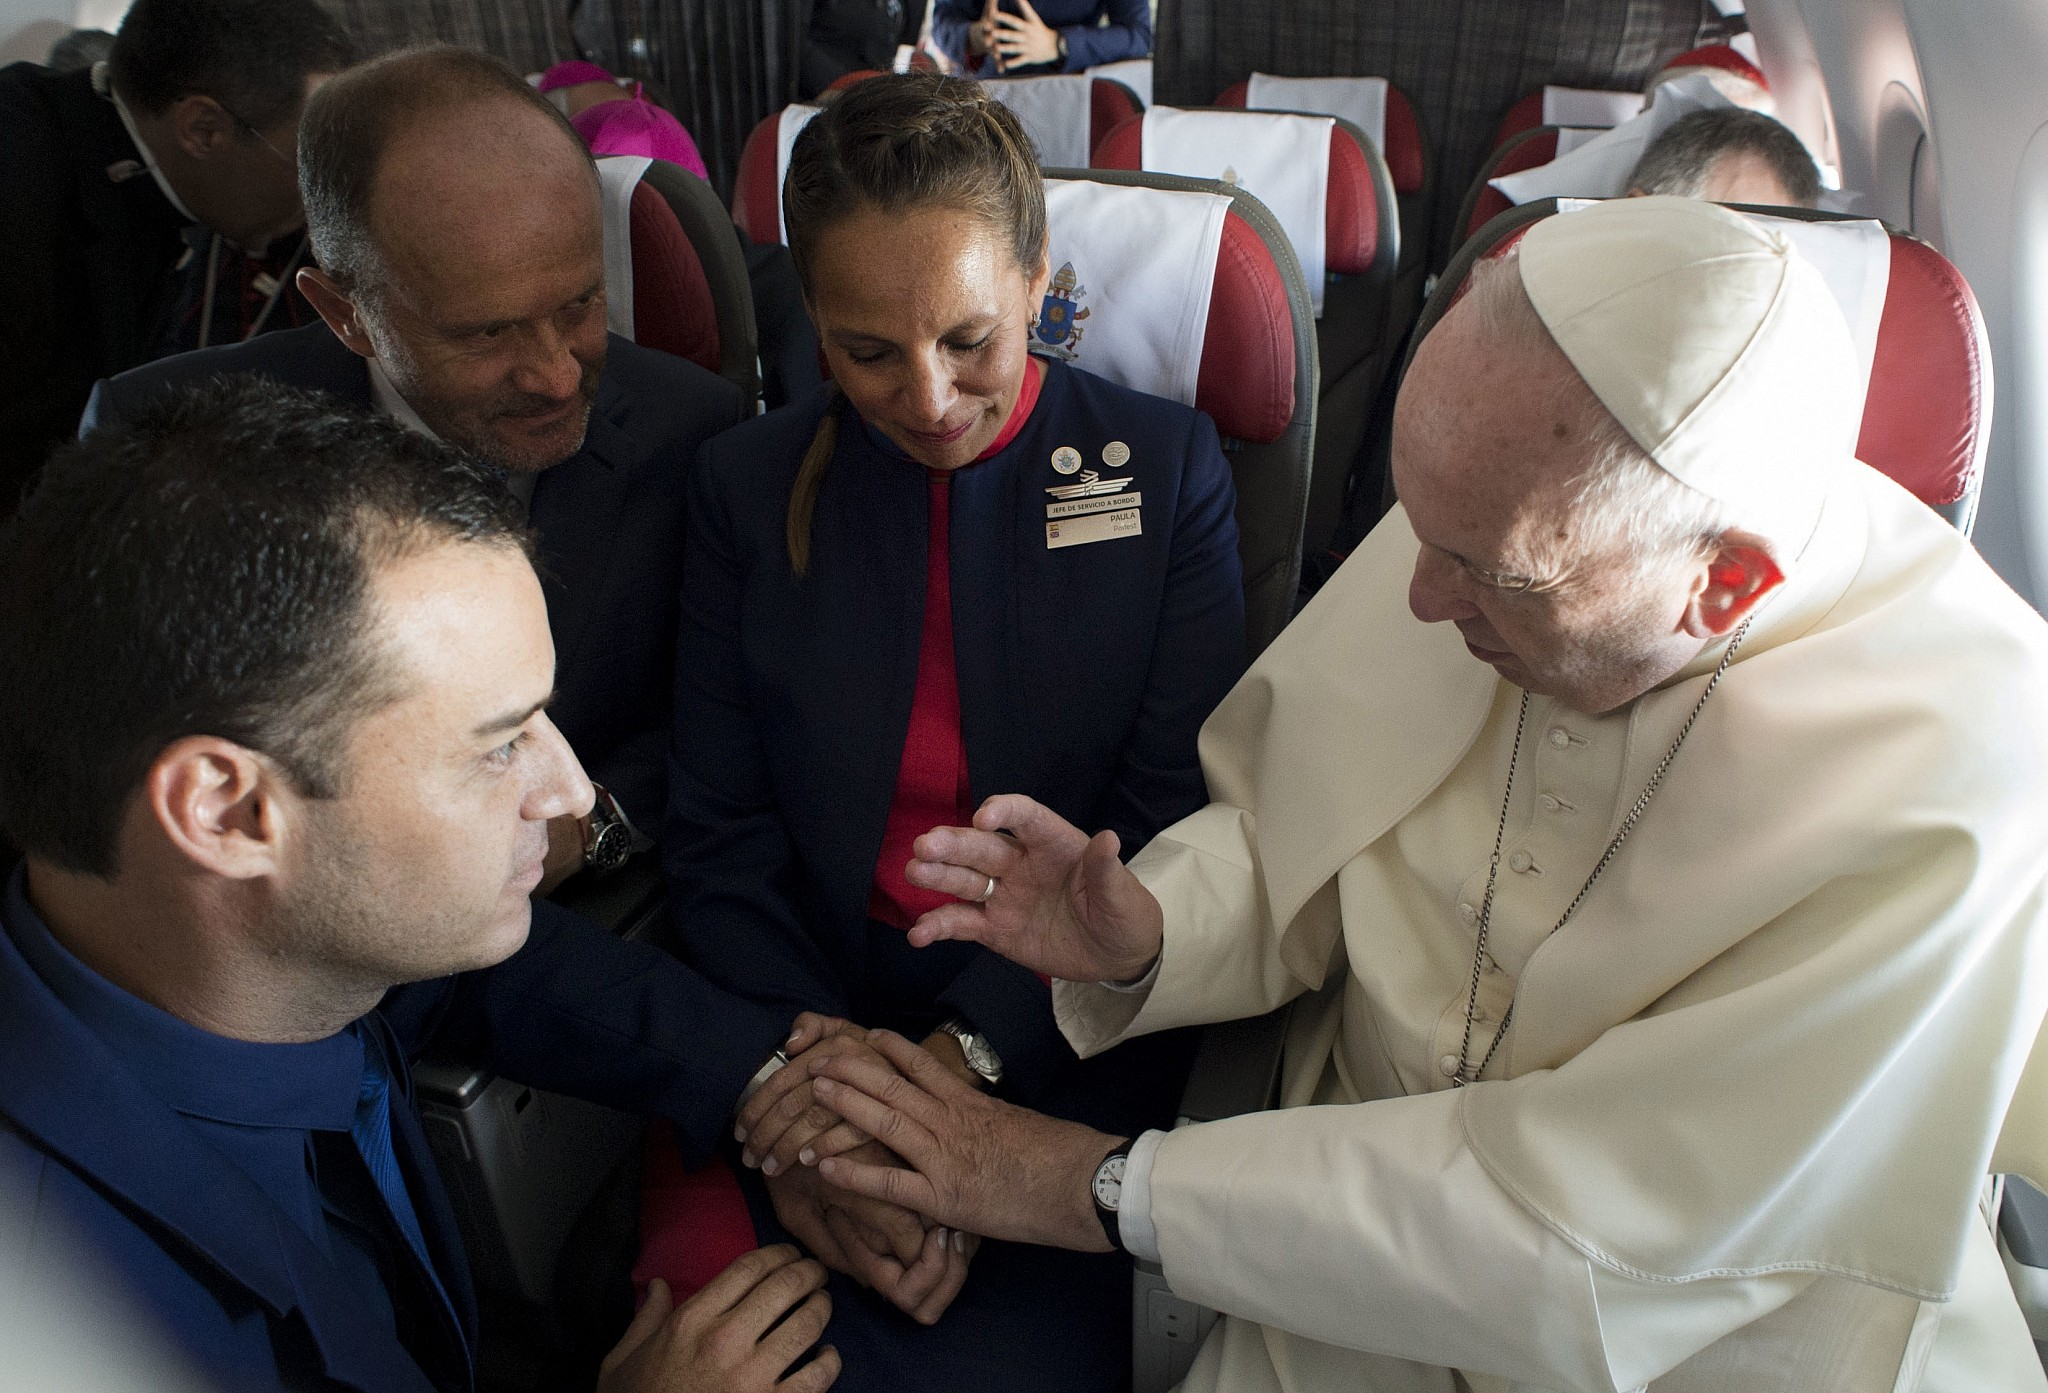 Pope marries couple on papal plane in chile the times of israel pope francis marries flight attendants carlos ciuffardi left and paola podest center kristyandbryce Image collections